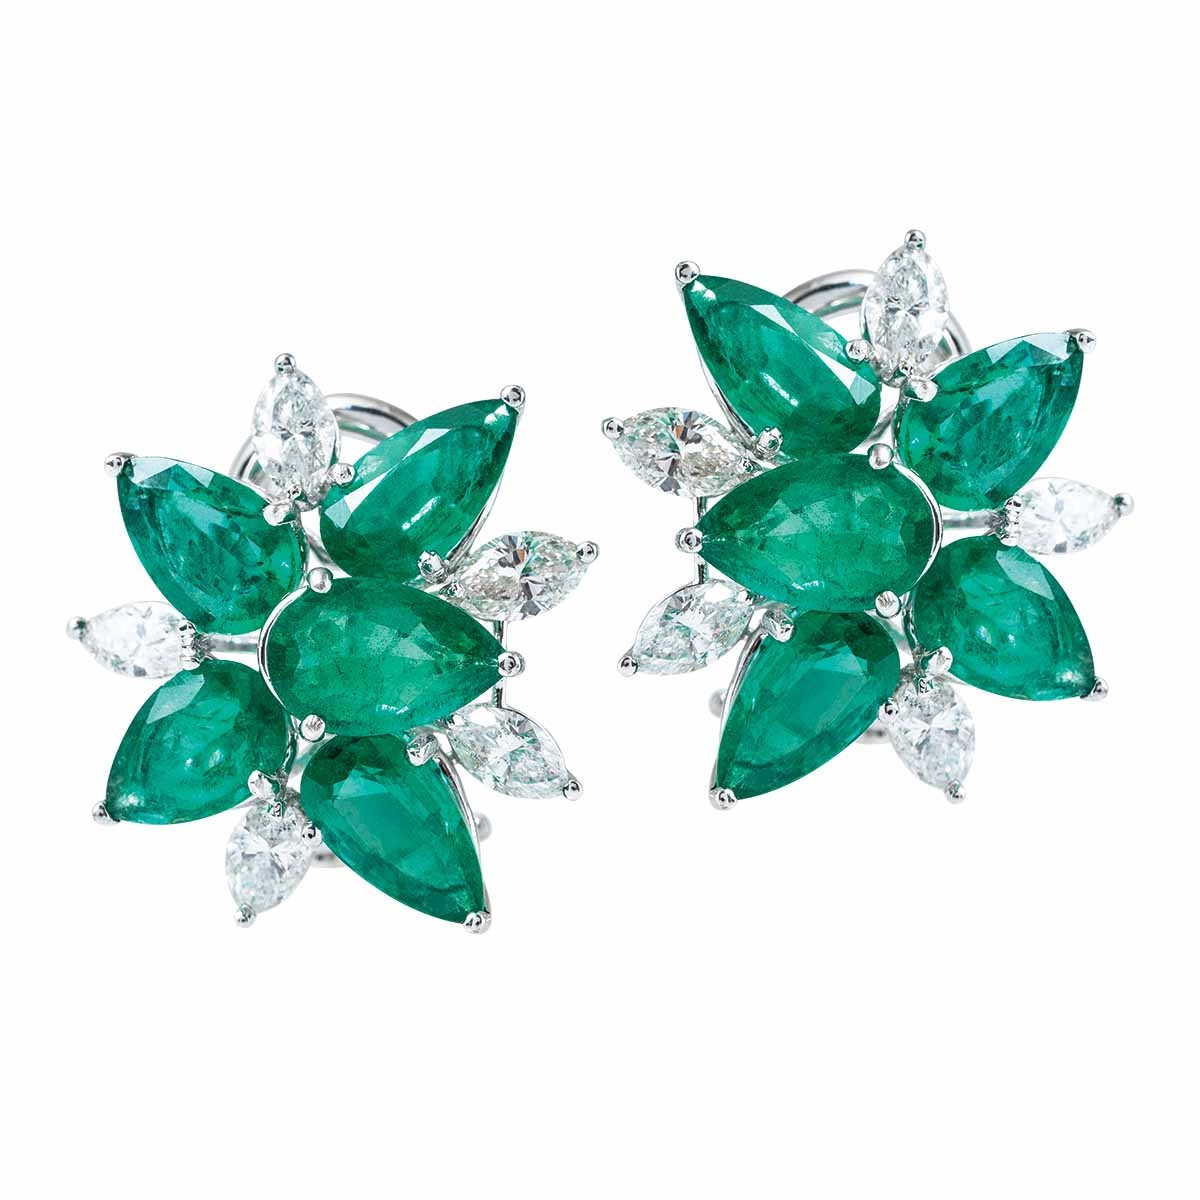 New 8.49 CTW Emerald & Diamond Cluster Earrings